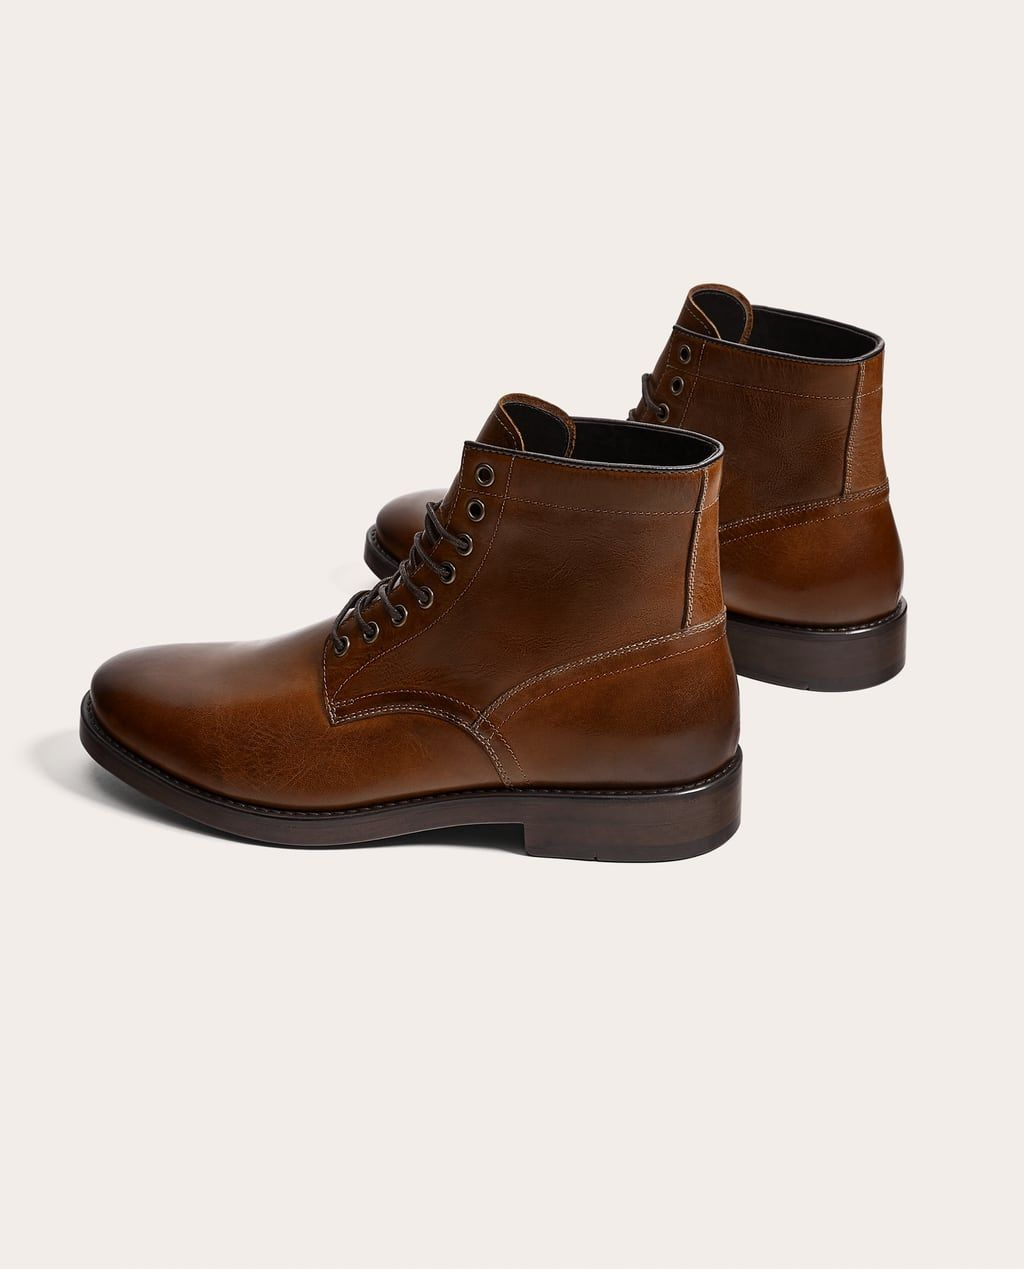 Image 1 of BROWN LEATHER LACE,UP BOOTS from Zara in 2019